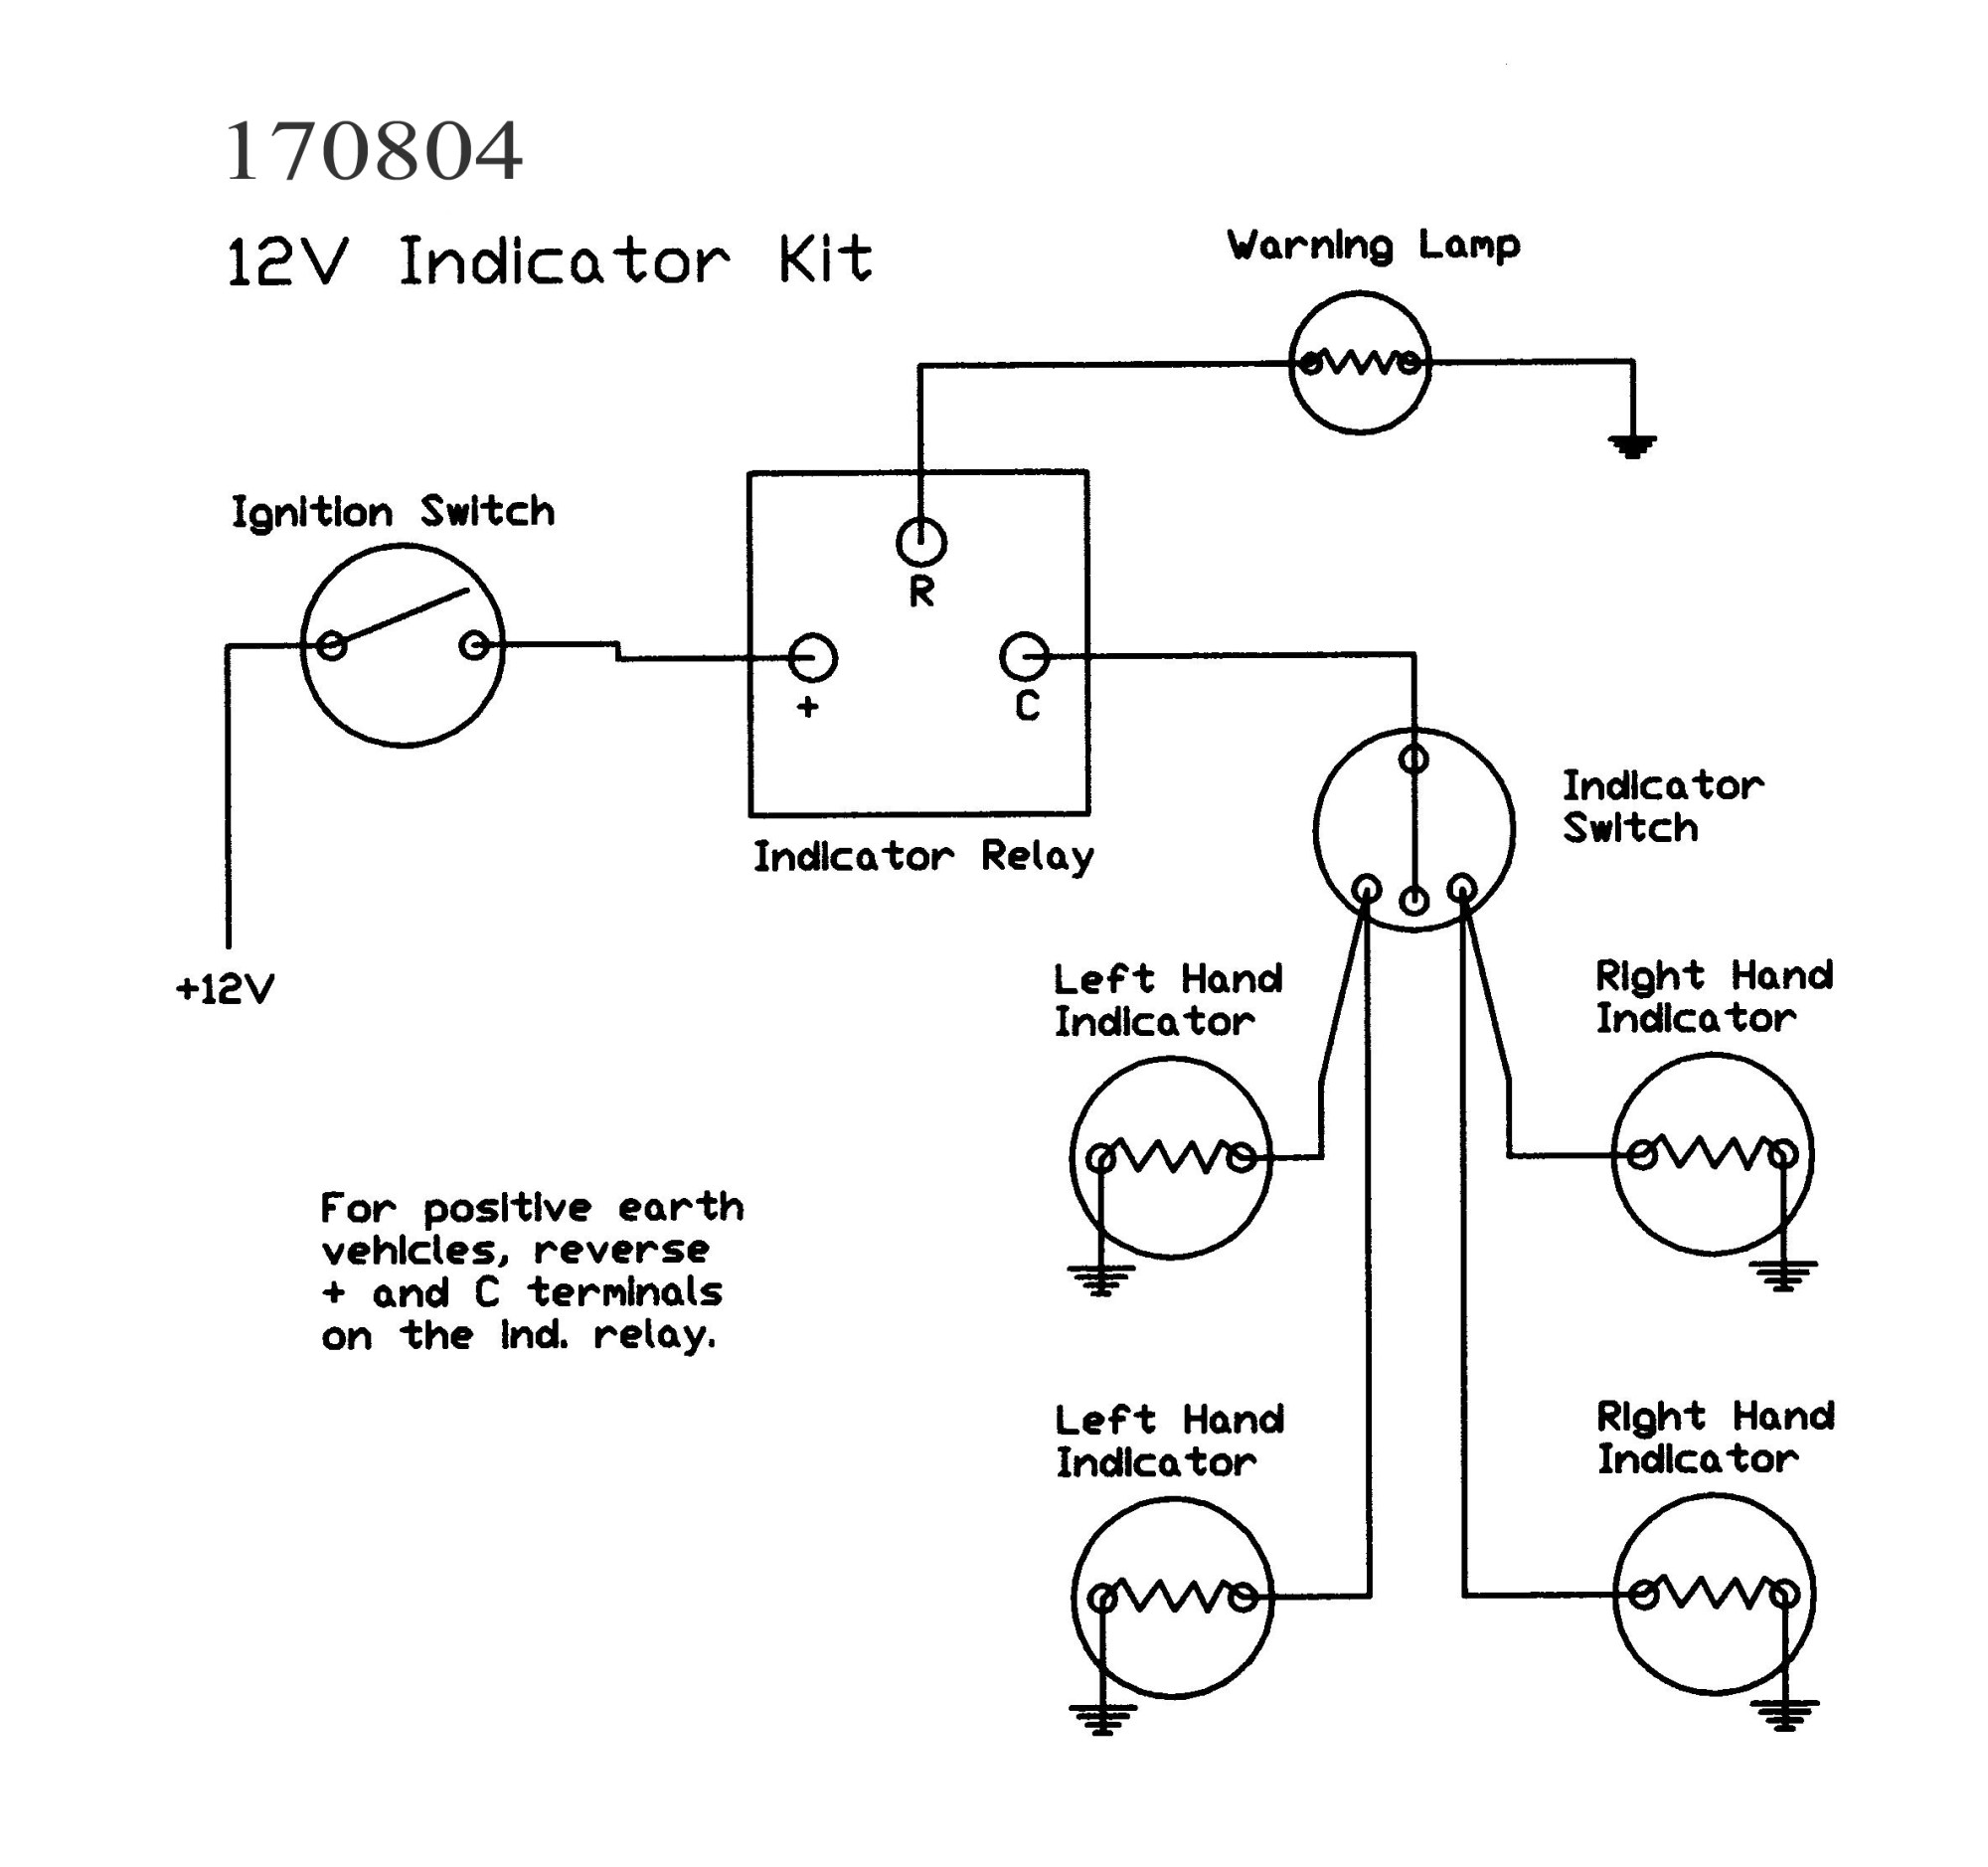 hight resolution of wiring diagram for 12v indicators wiring diagram sheet wiring diagram for led indicators wiring diagram for indicators source modern flasher